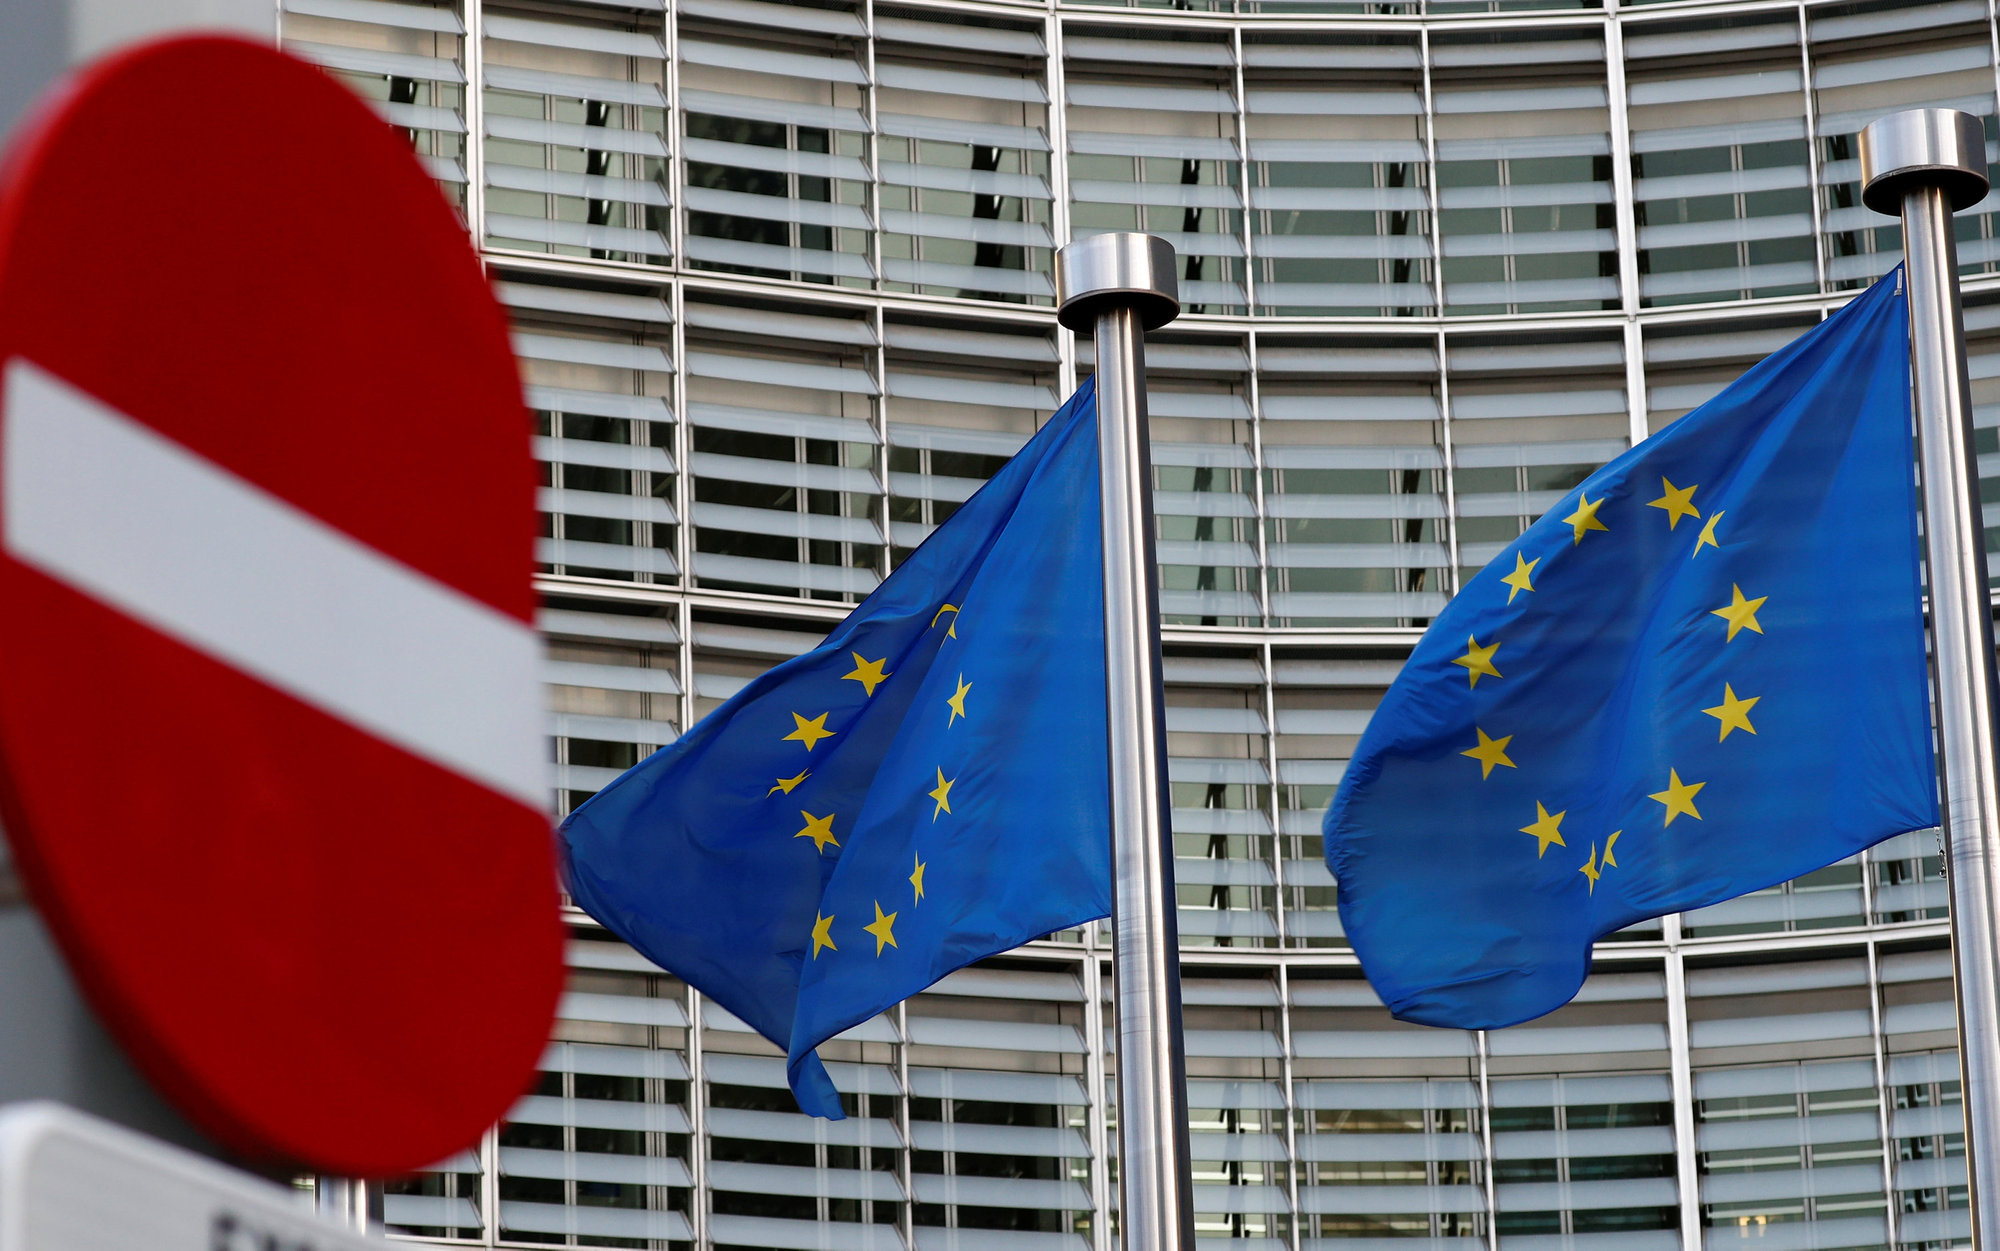 EU extremely concerned by Iran